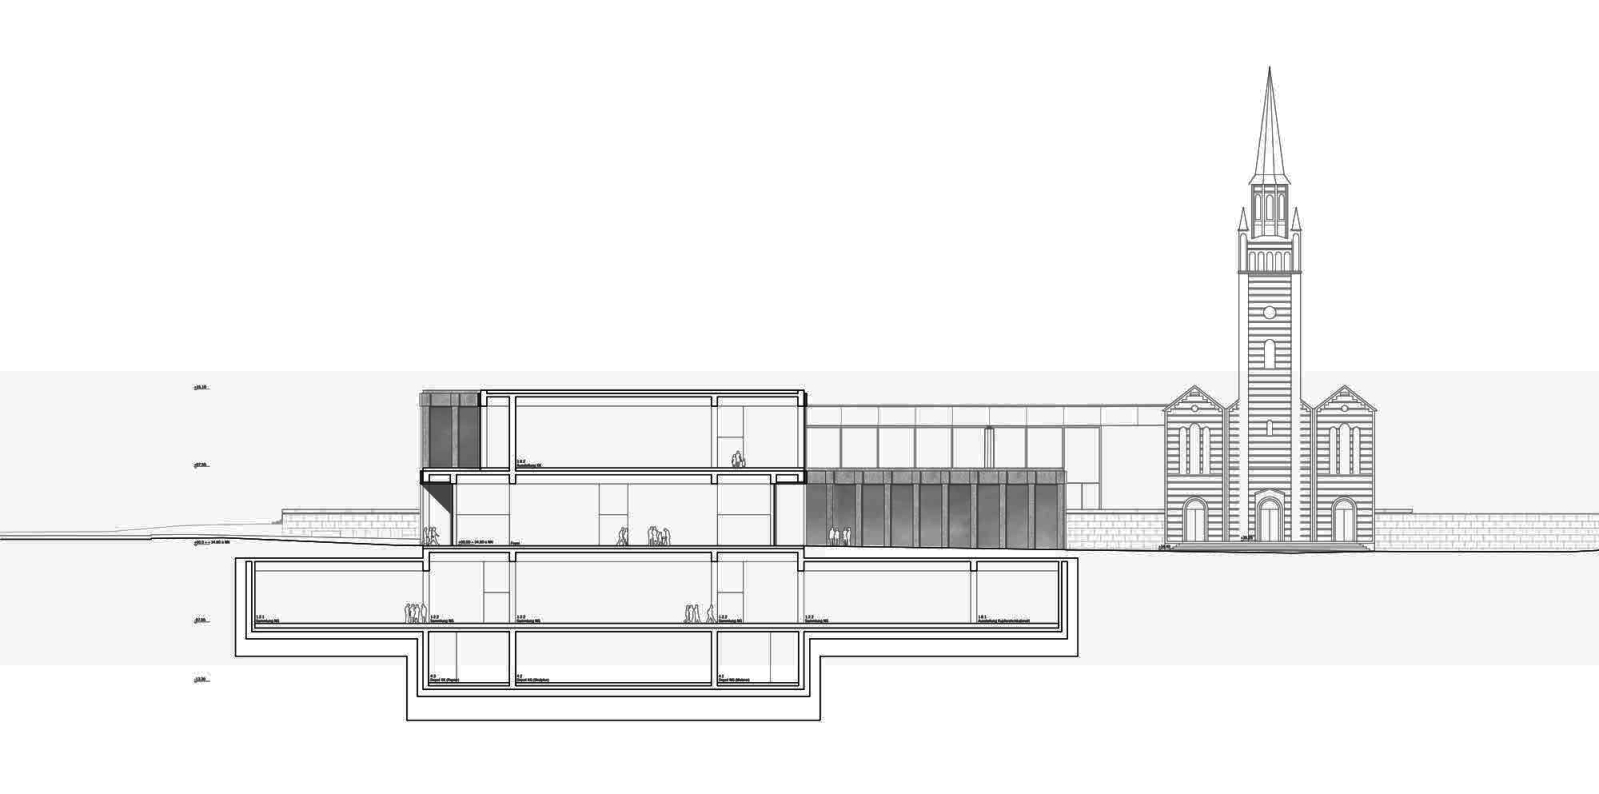 Museum of the 20th Century in Berlin by Beatriz Alés and